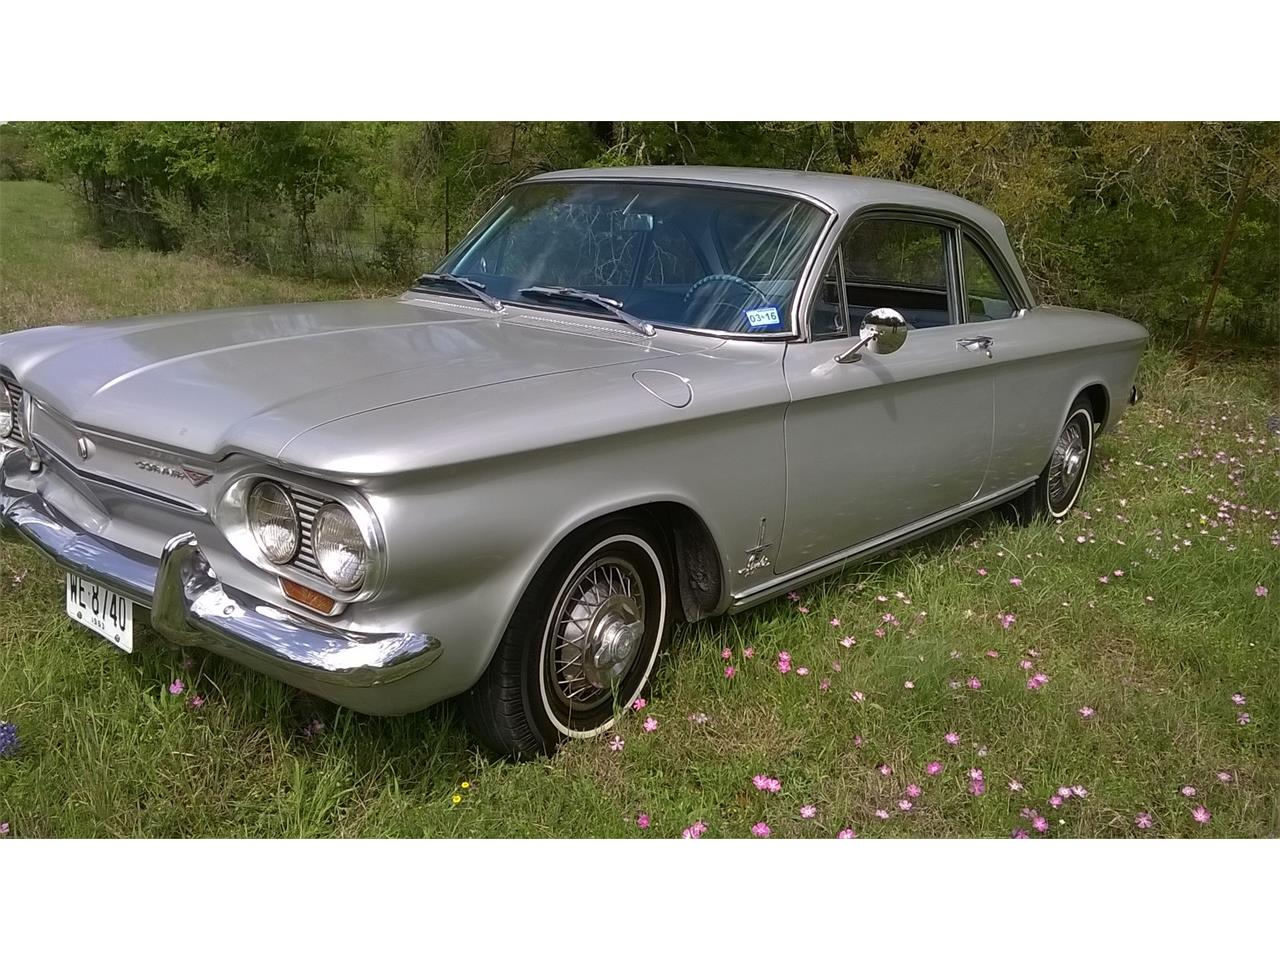 1963 chevrolet corvair monza for sale | classiccars | cc-981694